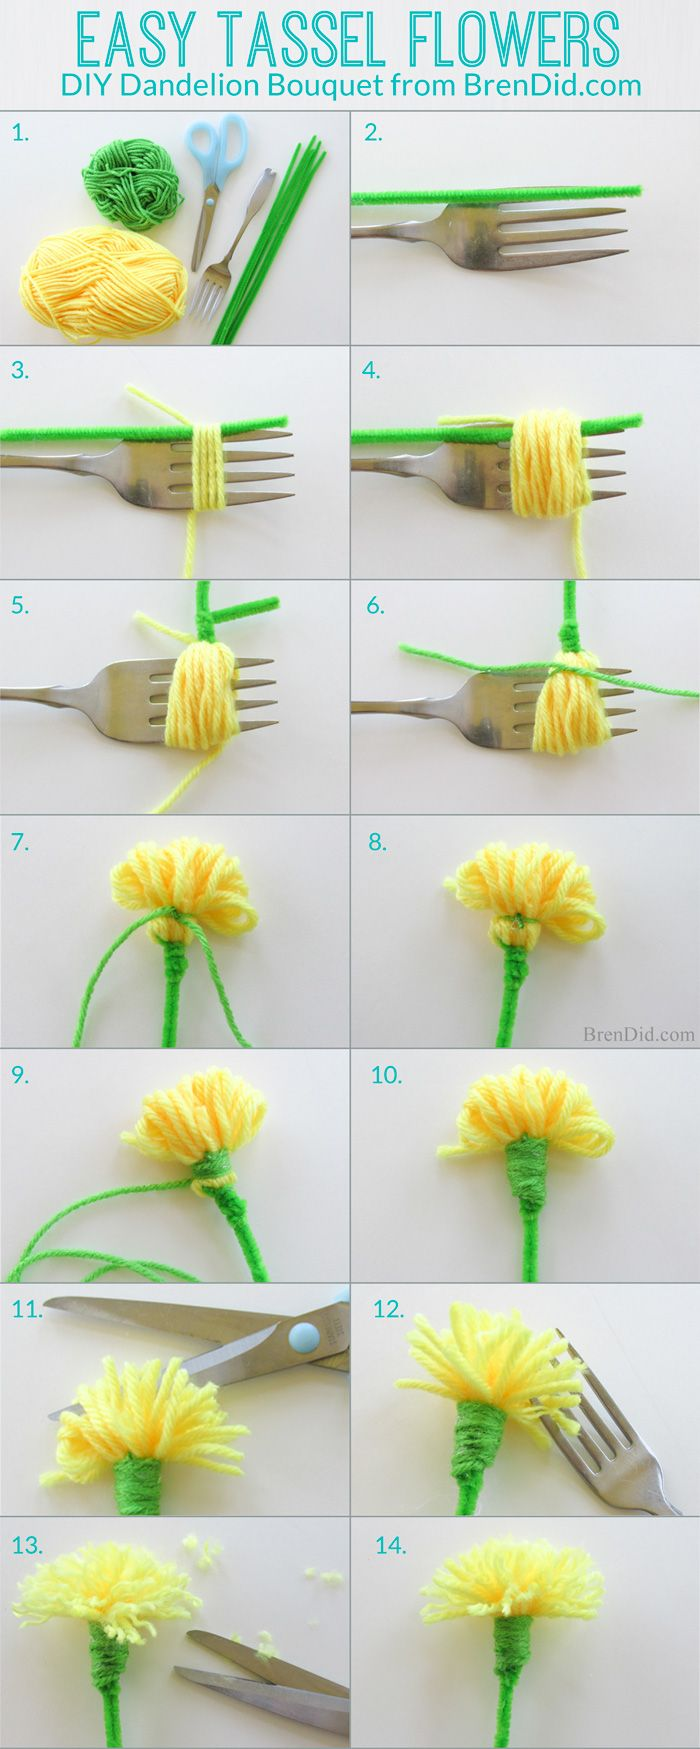 How to make tassel flowers - Make an easy DIY dandelion bouquet with yarn and pipe cleaners to delight someone you love. Perfect for weddings, parties and Mother's Day. ☆毛糸とパイプ・クリーナーで作る簡単たんぽぽブーケ。結婚式、パーティー、母の日に!